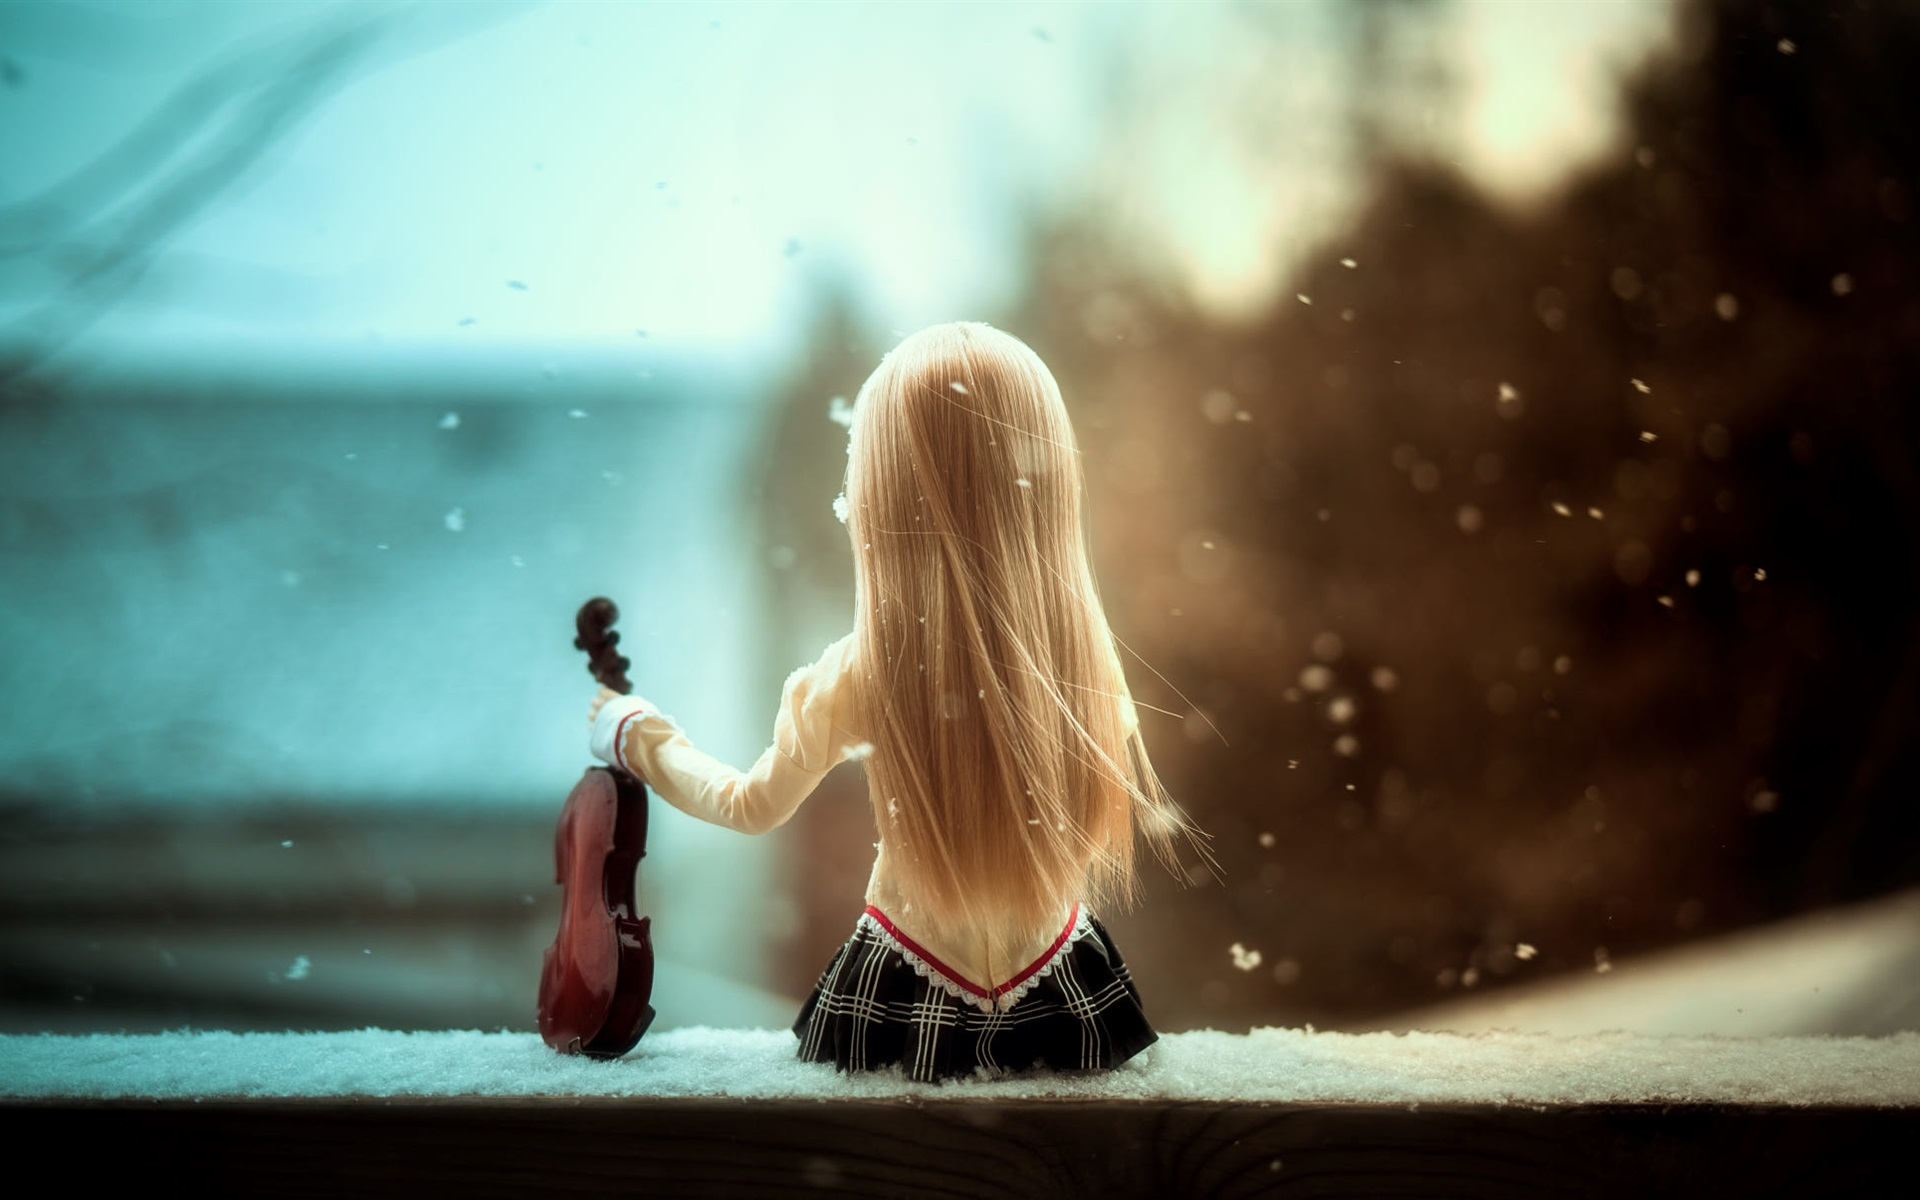 Wallpaper Doll Girl Back View Violin Snow 1920x1200 Hd Picture Image